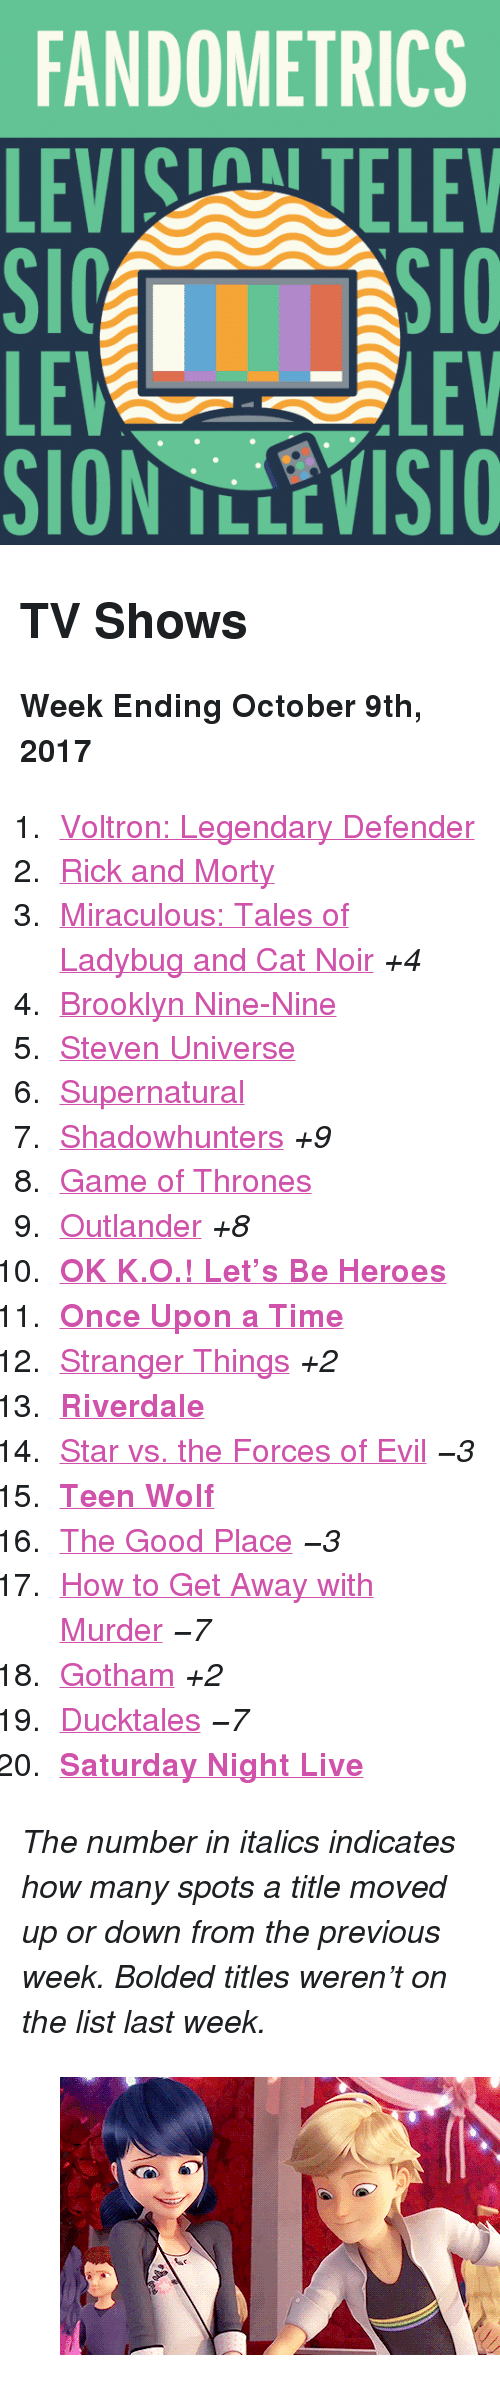 "Saturday Night Live: FANDOMETRICS  LEVIS TELEV  LE  SION TLLEVISIO  LEV <h2>TV Shows</h2><p><b>Week Ending October 9th, 2017</b></p><ol><li><a href=""http://tumblr.co/61378fWp3"">Voltron: Legendary Defender</a></li><li><a href=""http://tumblr.co/61388fWpO"">Rick and Morty</a></li><li><a href=""http://tumblr.co/61308fWpu"">Miraculous: Tales of Ladybug and Cat Noir</a> <i>+4</i></li><li><a href=""http://tumblr.co/61318fWpR"">Brooklyn Nine-Nine</a></li><li><a href=""http://tumblr.co/61338fWpT"">Steven Universe</a></li><li><a href=""http://tumblr.co/61358fWpV"">Supernatural</a></li><li><a href=""http://tumblr.co/61368fWpn"">Shadowhunters</a> <i>+9</i></li><li><a href=""http://tumblr.co/61378fWpX"">Game of Thrones</a></li><li><a href=""http://tumblr.co/61388fWpk"">Outlander</a> <i>+8</i></li><li><a href=""http://tumblr.co/61308fWpw""><b>OK K.O.! Let&rsquo;s Be Heroes</b></a></li><li><a href=""http://tumblr.co/61318fWpb""><b>Once Upon a Time</b></a></li><li><a href=""http://tumblr.co/61338fWpd"">Stranger Things</a> <i>+2</i></li><li><a href=""http://tumblr.co/61348fWpe""><b>Riverdale</b></a></li><li><a href=""http://tumblr.co/61358fWp5"">Star vs. the Forces of Evil</a> <i><i>−3</i></i></li><li><a href=""http://tumblr.co/61368fWpg""><b>Teen Wolf</b></a></li><li><a href=""http://tumblr.co/61378fWp9"">The Good Place</a> <i><i>−3</i></i></li><li><a href=""http://tumblr.co/61388fWpi"">How to Get Away with Murder</a> <i><i>−7</i></i></li><li><a href=""http://tumblr.co/61398fWpc"">Gotham</a> <i>+2</i></li><li><a href=""http://tumblr.co/61308fWpY"">Ducktales</a> <i><i>−7</i></i></li><li><a href=""http://tumblr.co/61328fWpm""><b>Saturday Night Live</b></a></li></ol><p><i>The number in italics indicates how many spots a title moved up or down from the previous week. Bolded titles weren't on the list last week.</i></p><figure data-orig-width=""500"" data-orig-height=""278"" data-tumblr-attribution=""ladysbugs:MjdBt7xIhNTXQtfDtLbcnQ:Z656zf2QUVBFp"" class=""tmblr-full""><img src=""https://78.media.tumblr.com/99ffb03e69fe56f03b53fe80a3284dae/tumblr_ox1u9micRS1vfny86o1_500.gif"" alt=""image"" data-orig-width=""500"" data-orig-height=""278""/></figure>"